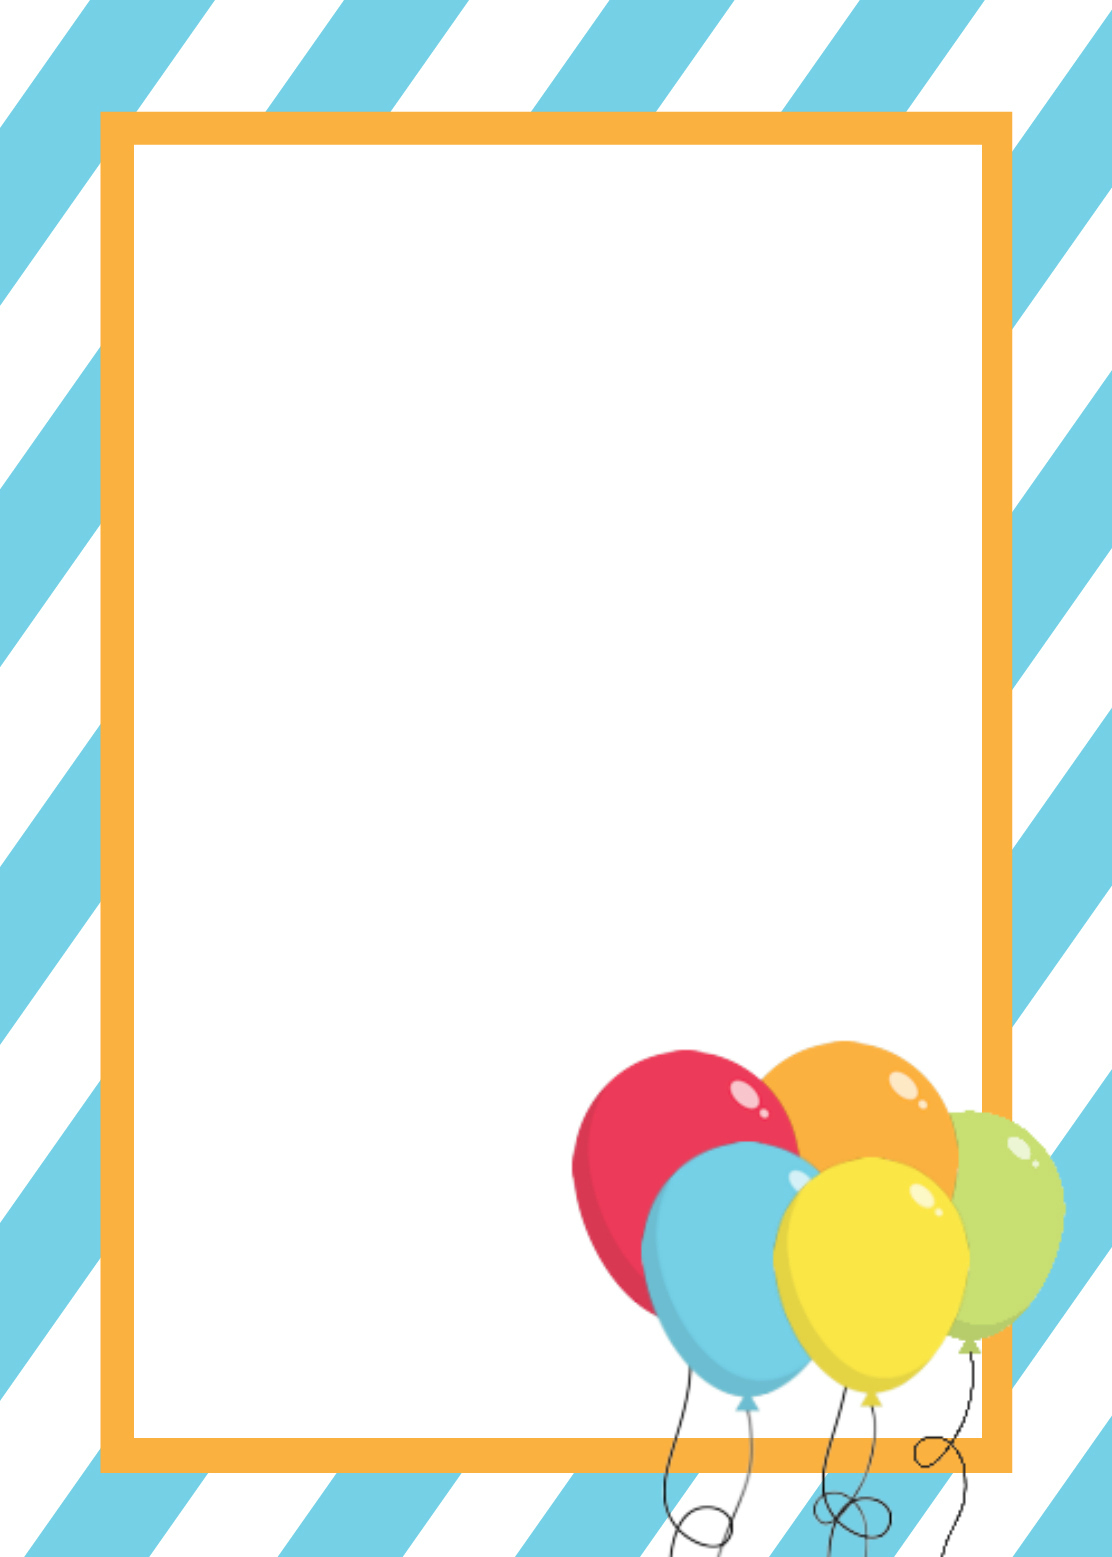 Free Printable Birthday Invitation Templates – Printable Kids Birthday Party Invitations